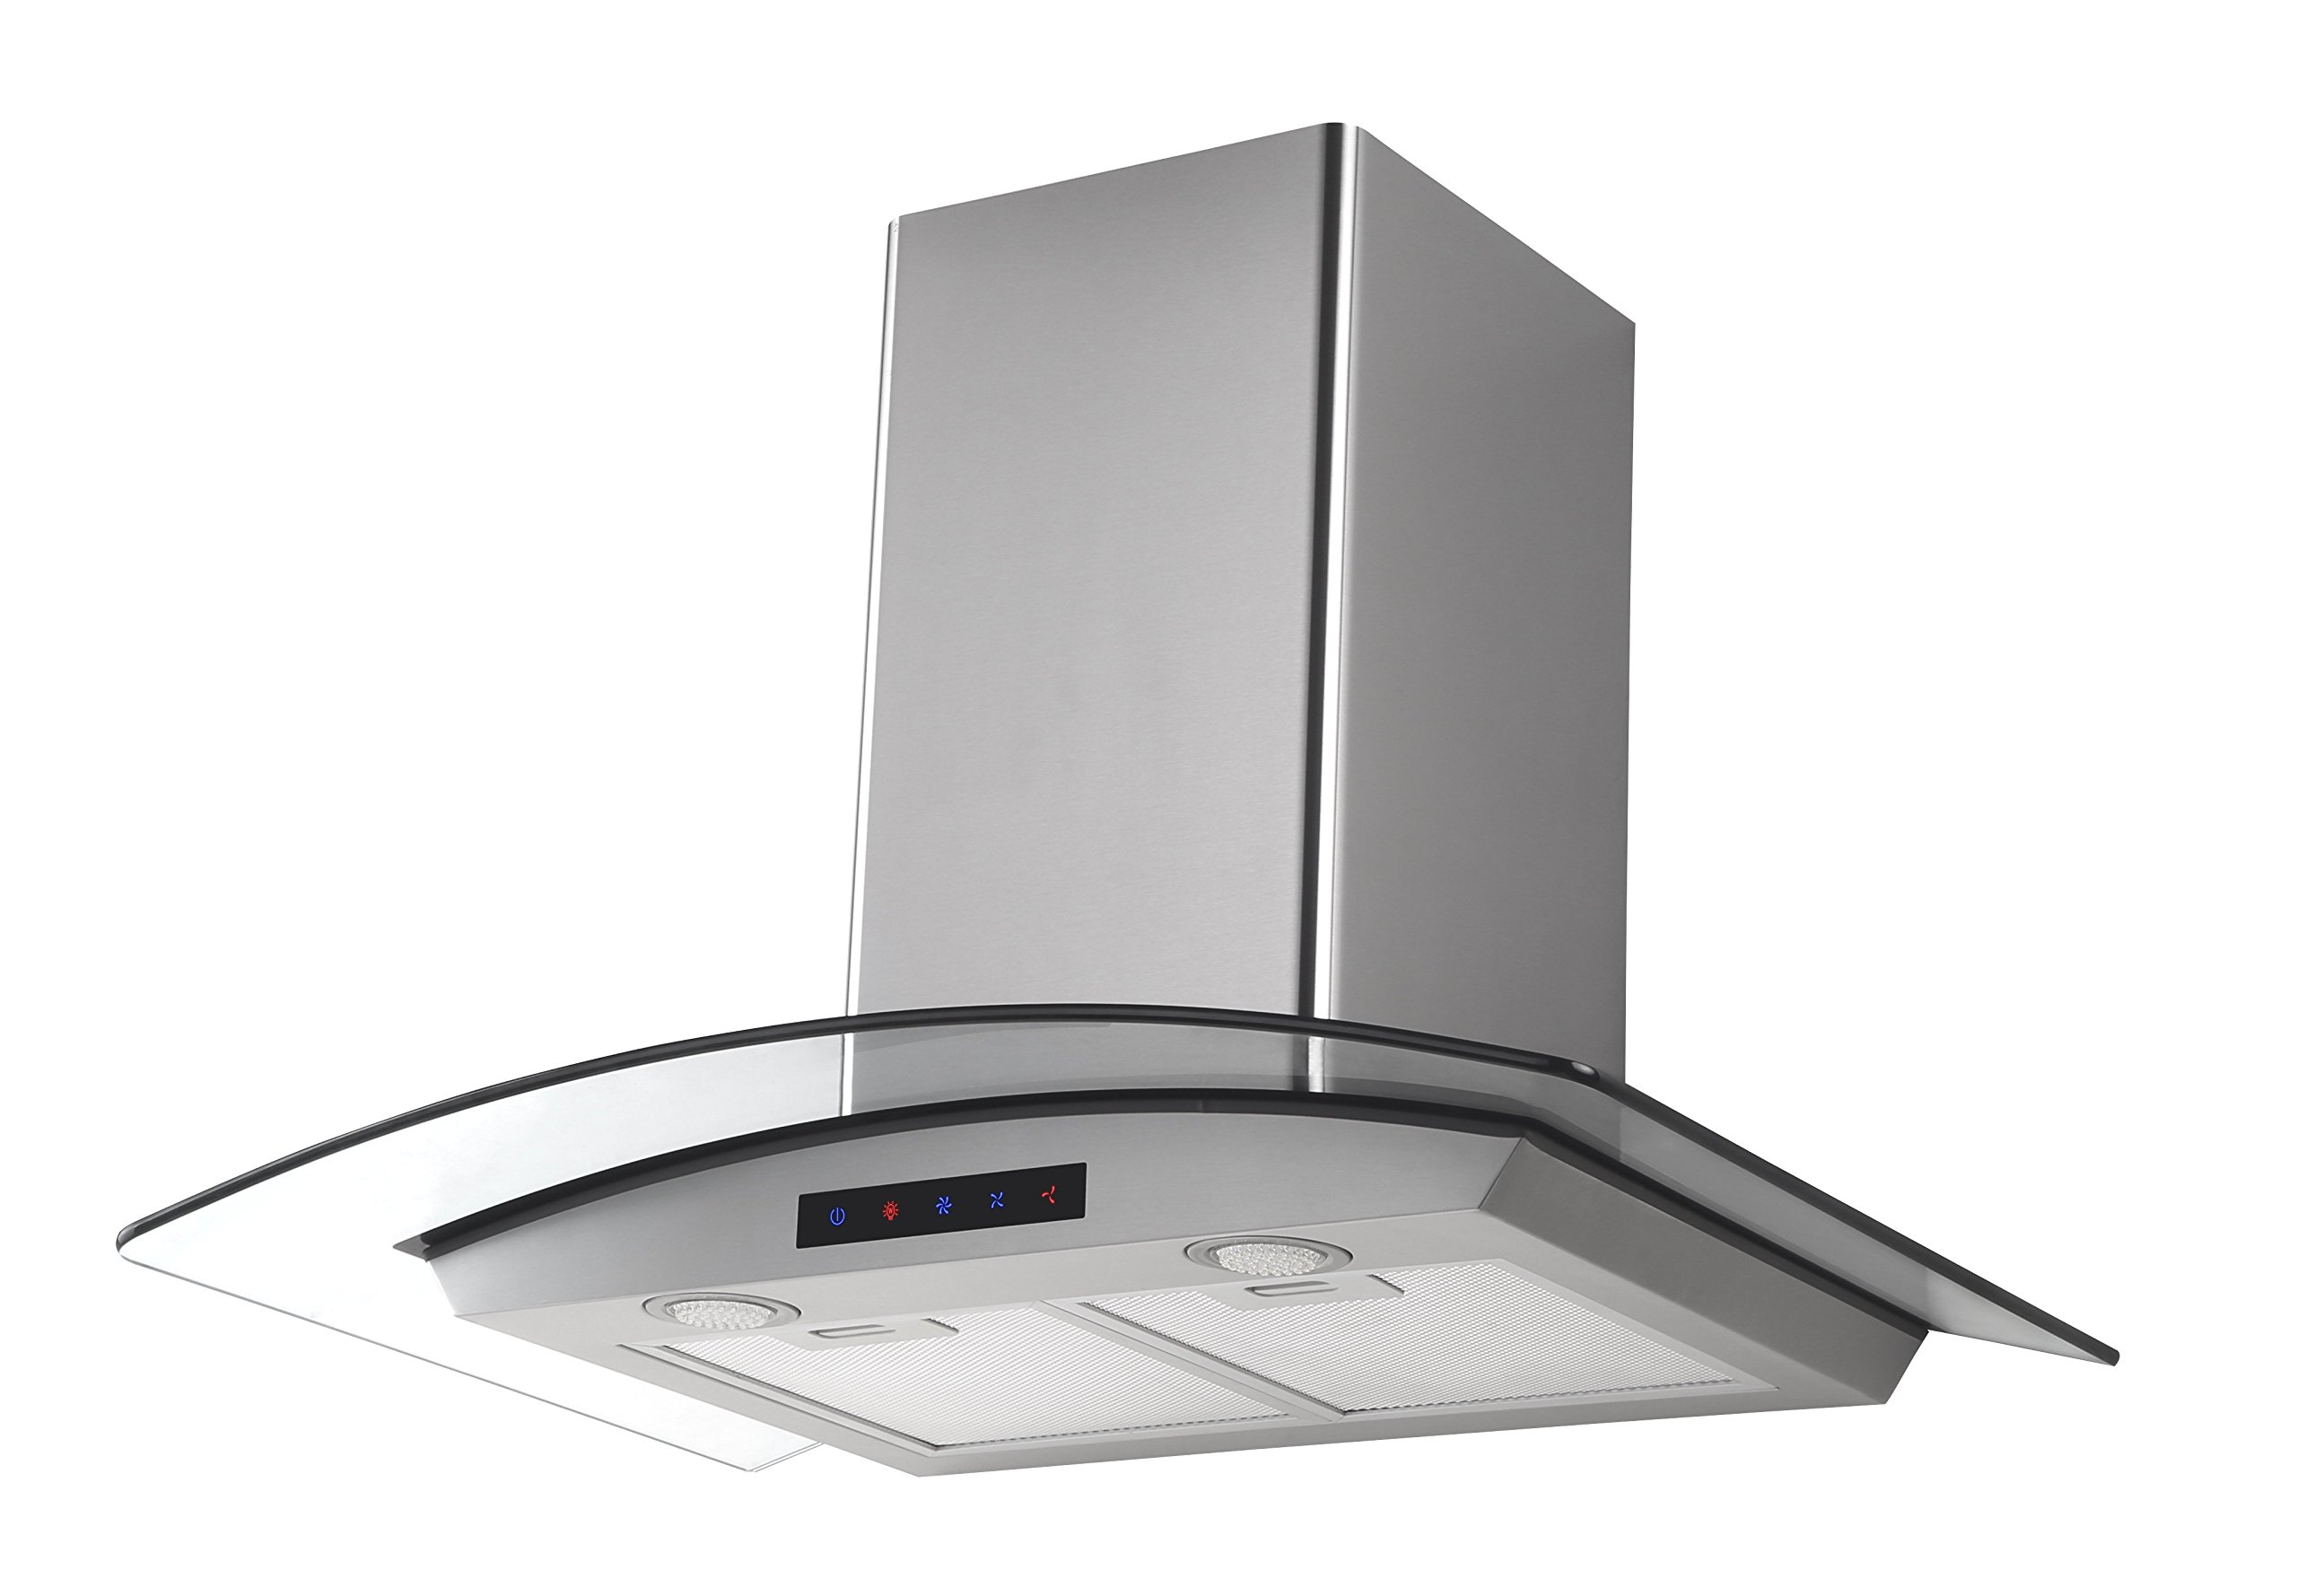 Kitchen Bath Collection HA75 LED Stainless Steel Wall Mounted Kitchen Range  Hood With Tempered